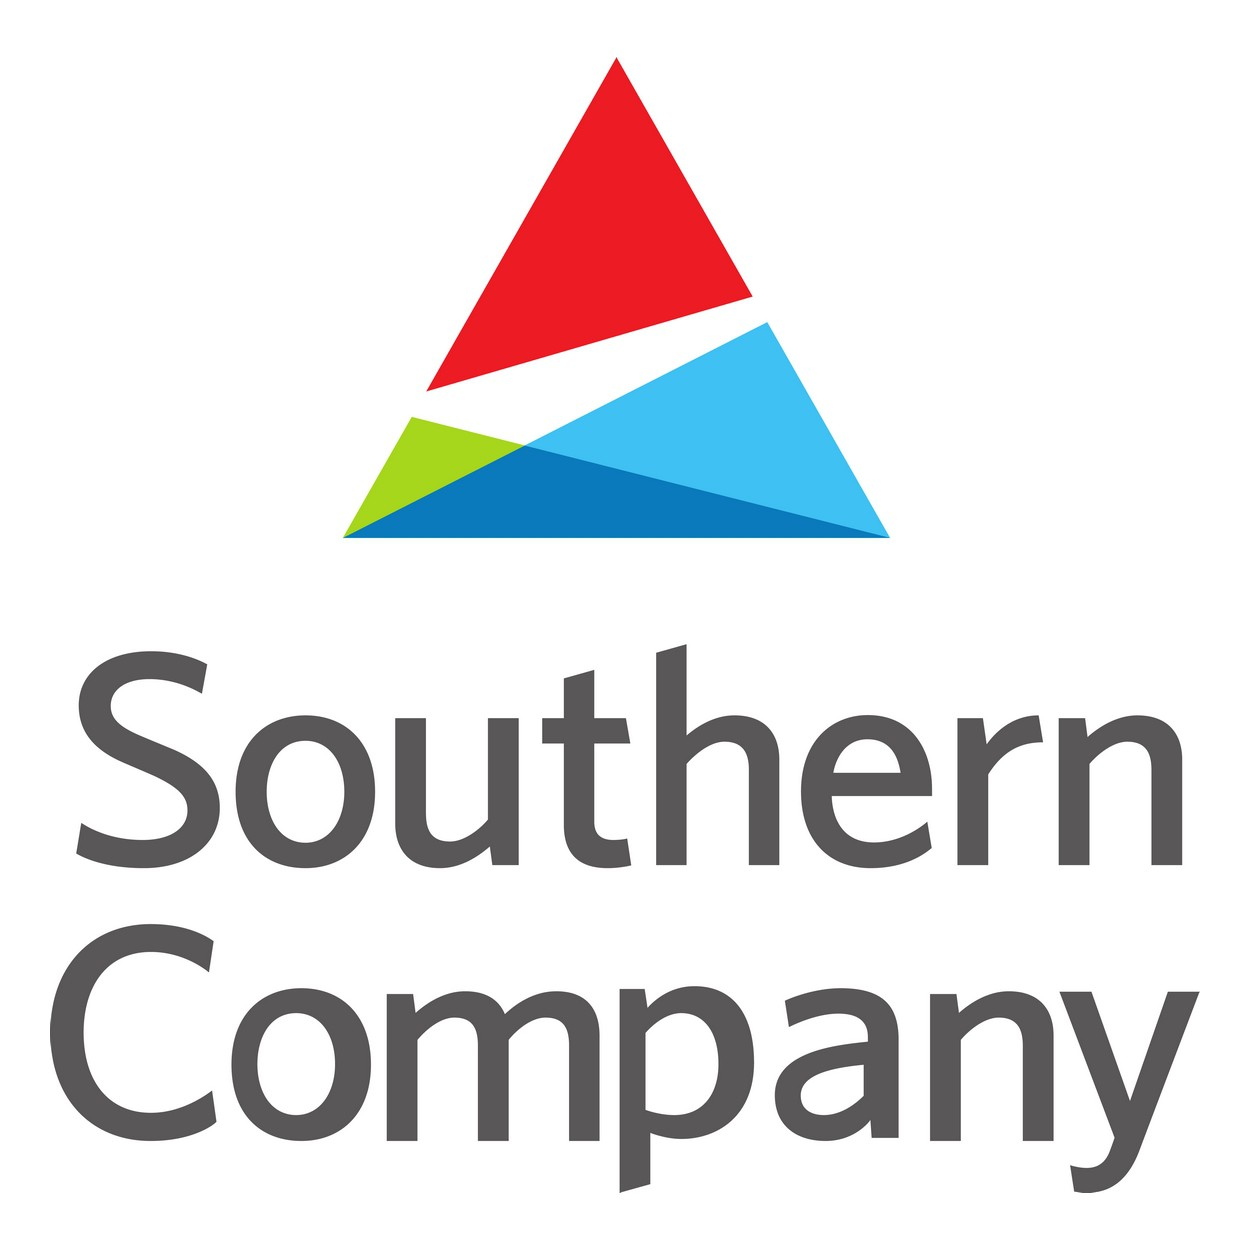 Southern Company Logo png